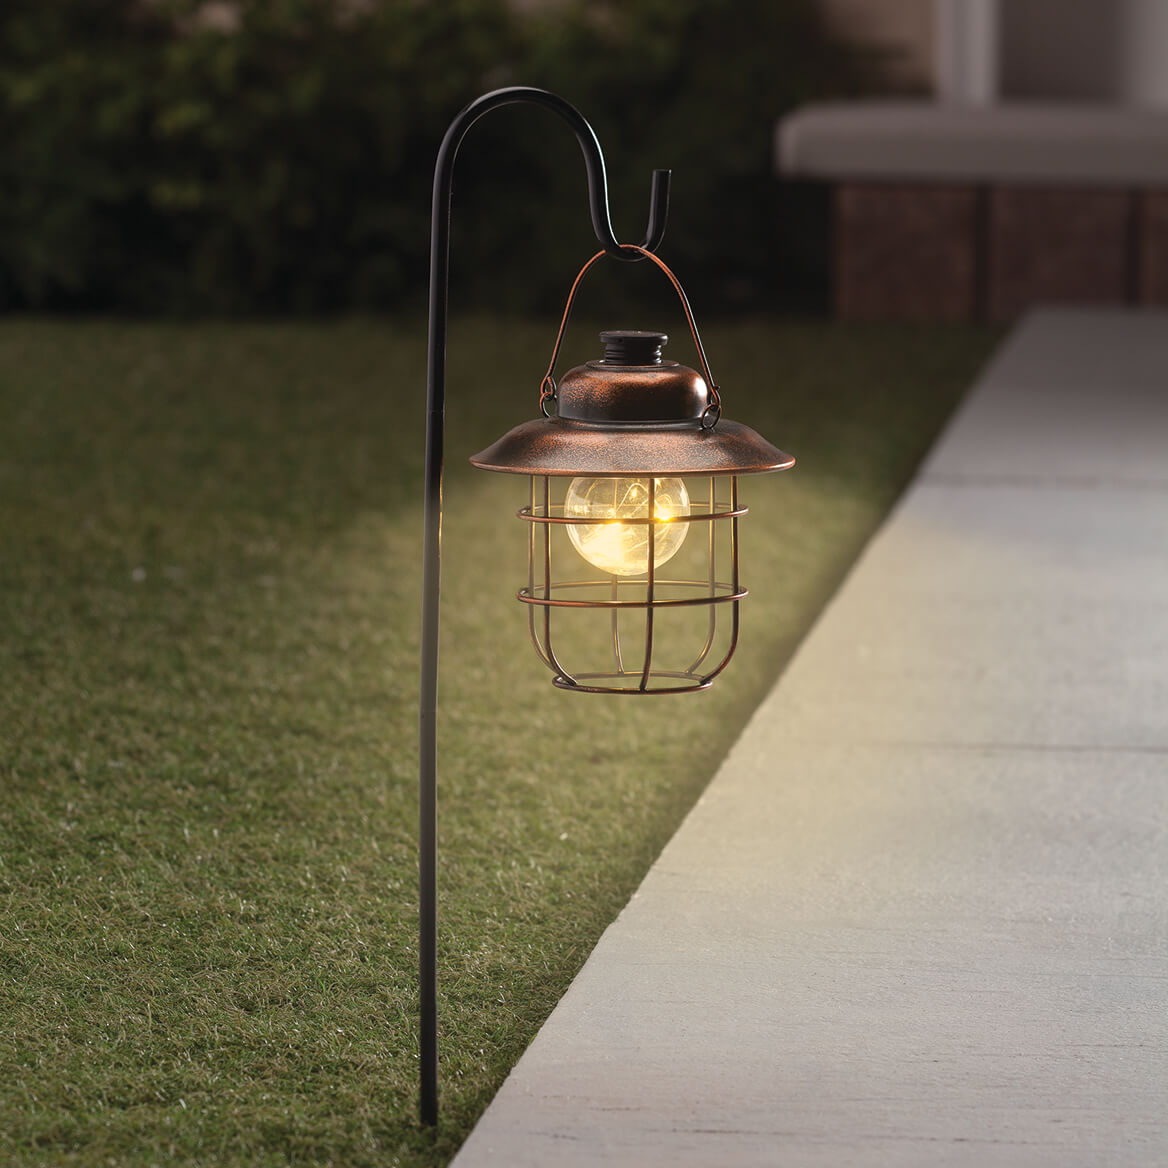 Home & Garden Glow Party Supplies Special Section Solar 4 Led Led Solar Powered Ground Light Outdoor Path Light Spot Lamp Yard Garden Lawn Landscape Waterproof Apr6